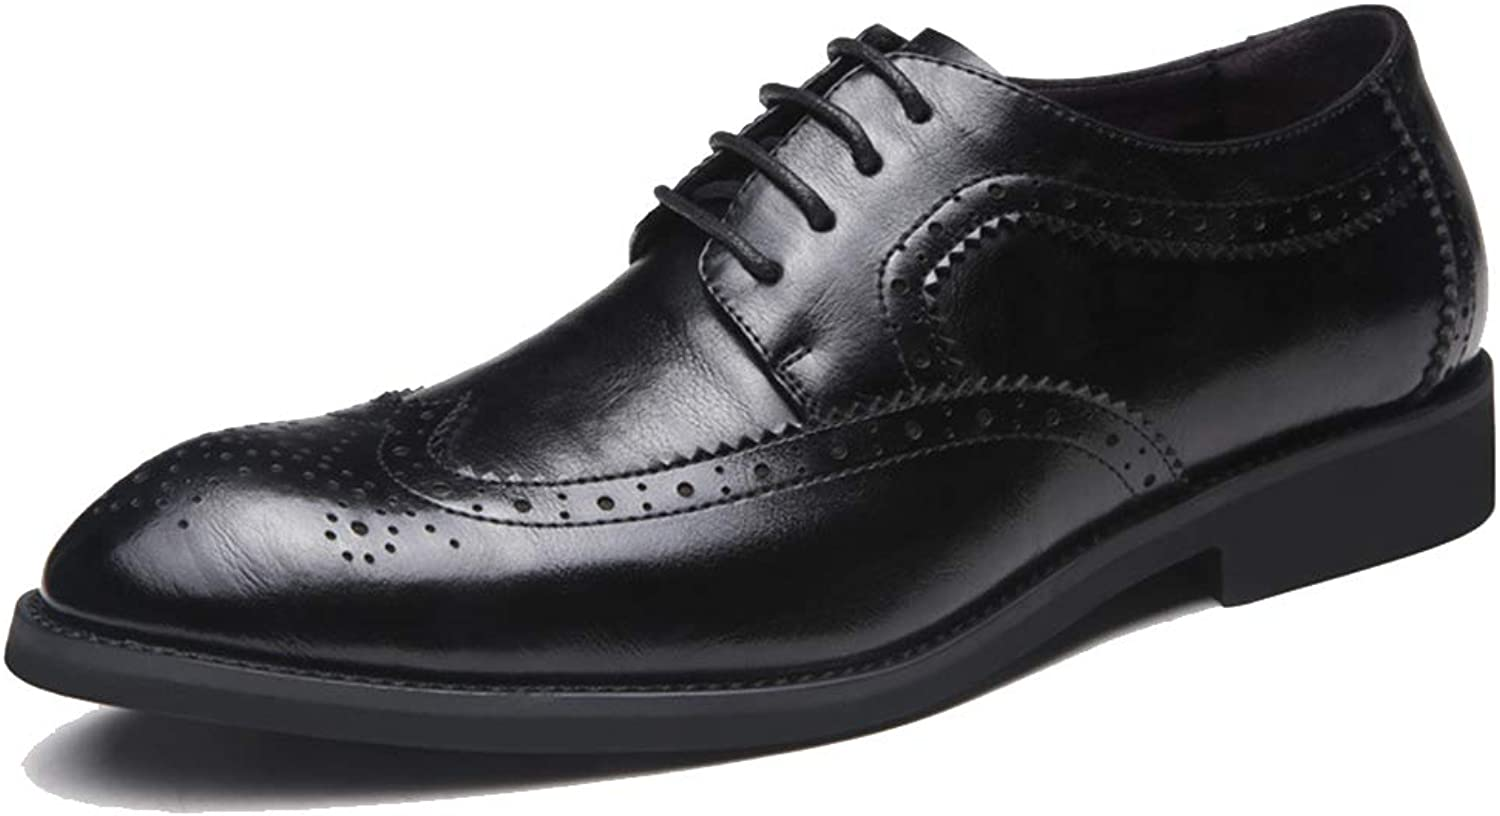 Brogues Lace-Up Dress Leather shoes Men Pointed Toe Brogue Business Classic Footwear Wedding Flat Casual shoes